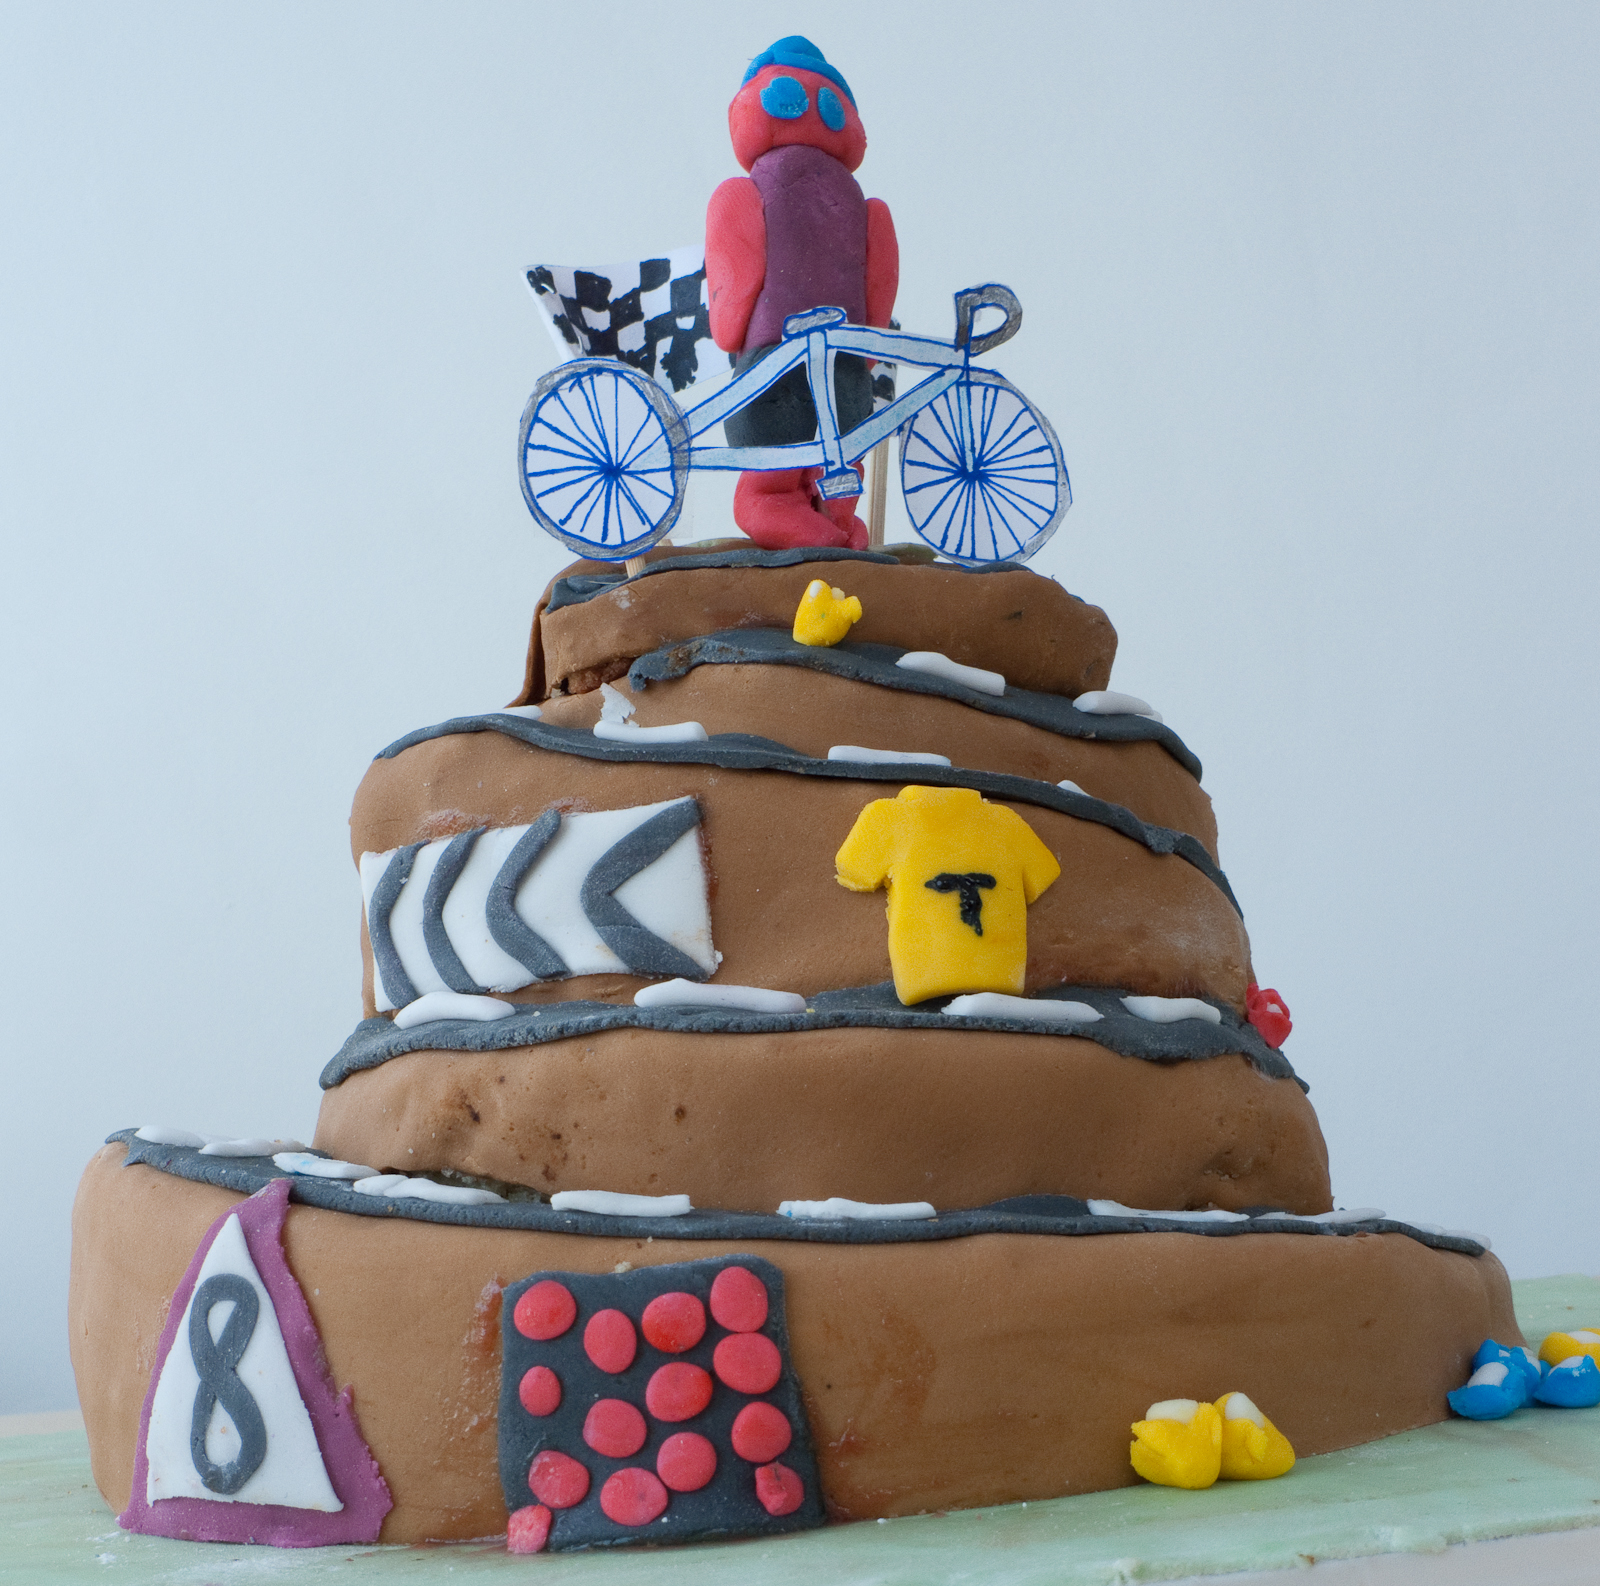 Minipips And His Dads Cycling Adventures Minipips Birthday Cake